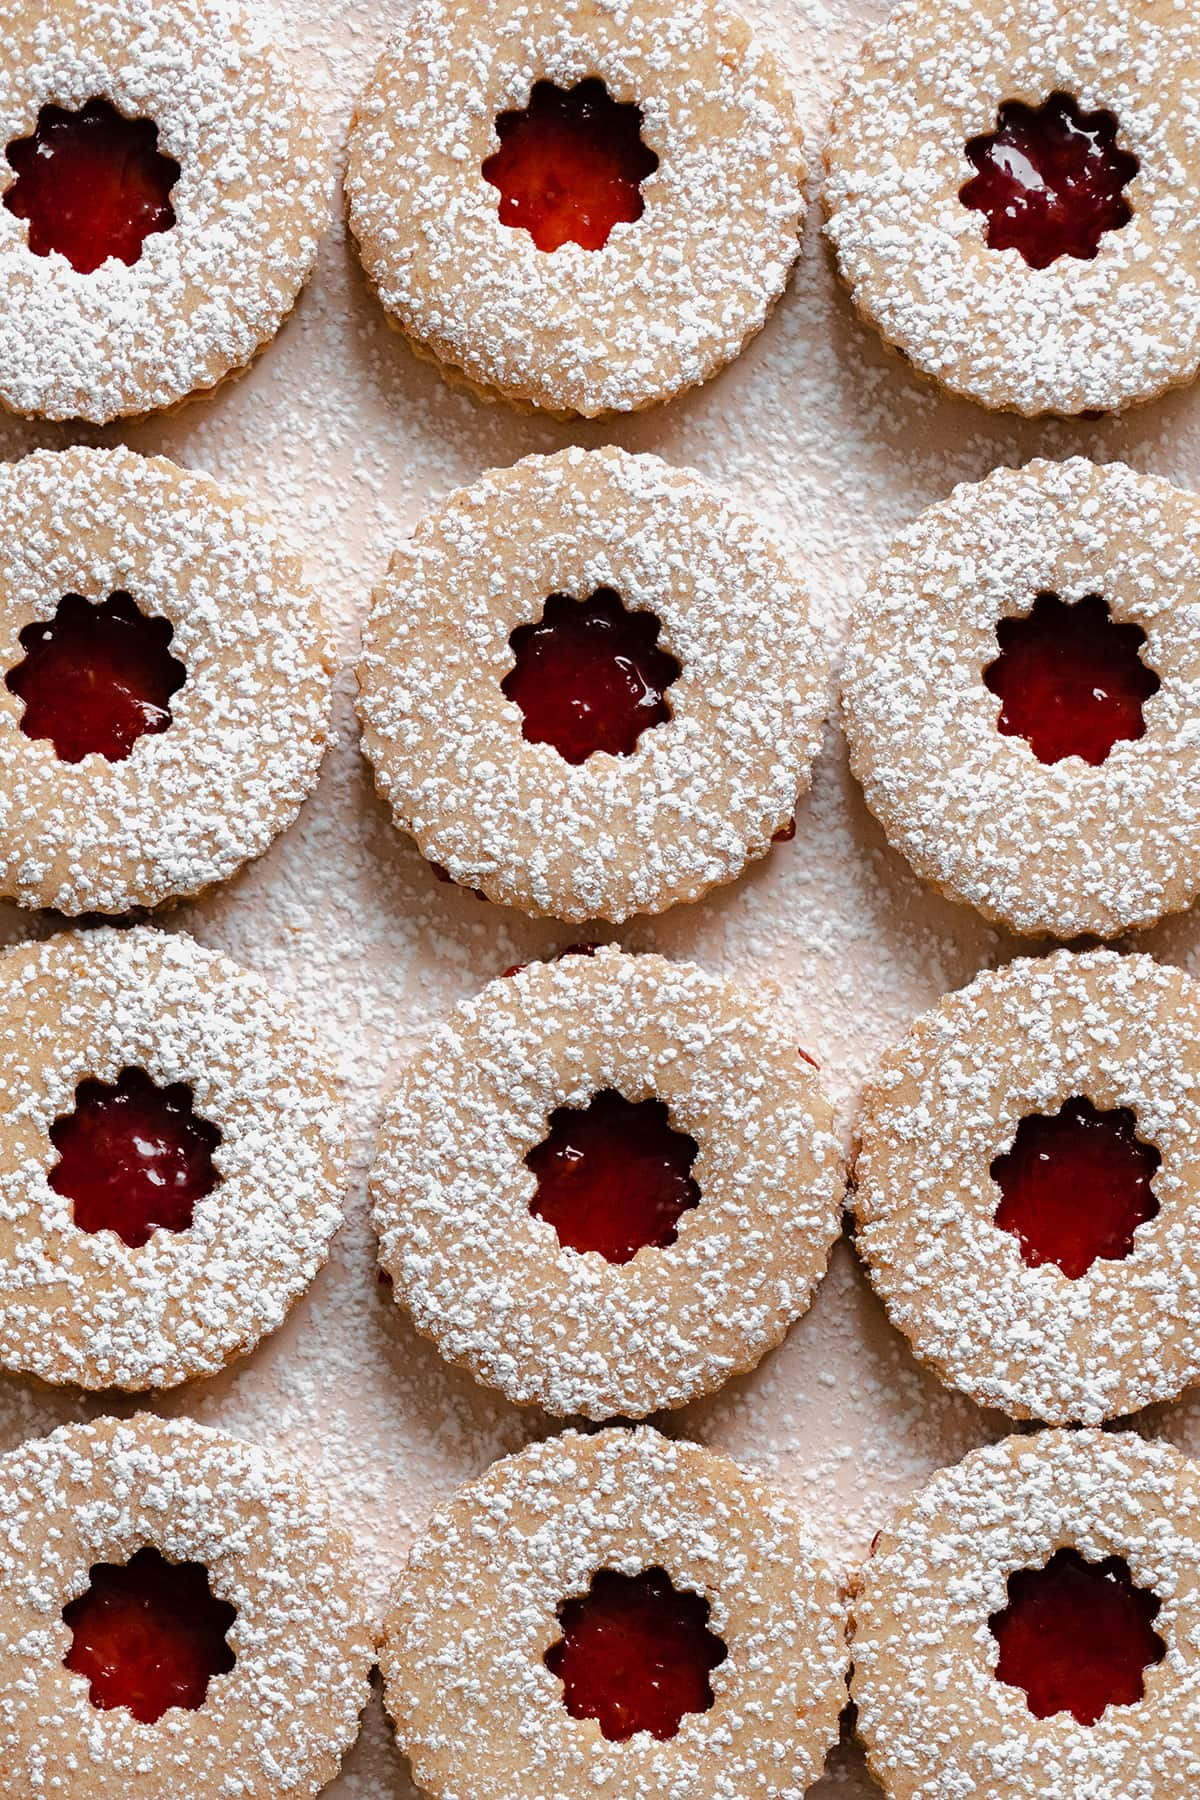 A close up image of Linzer Cookies with raspberry jam and a dusting of powdered sugar on a beige plate.